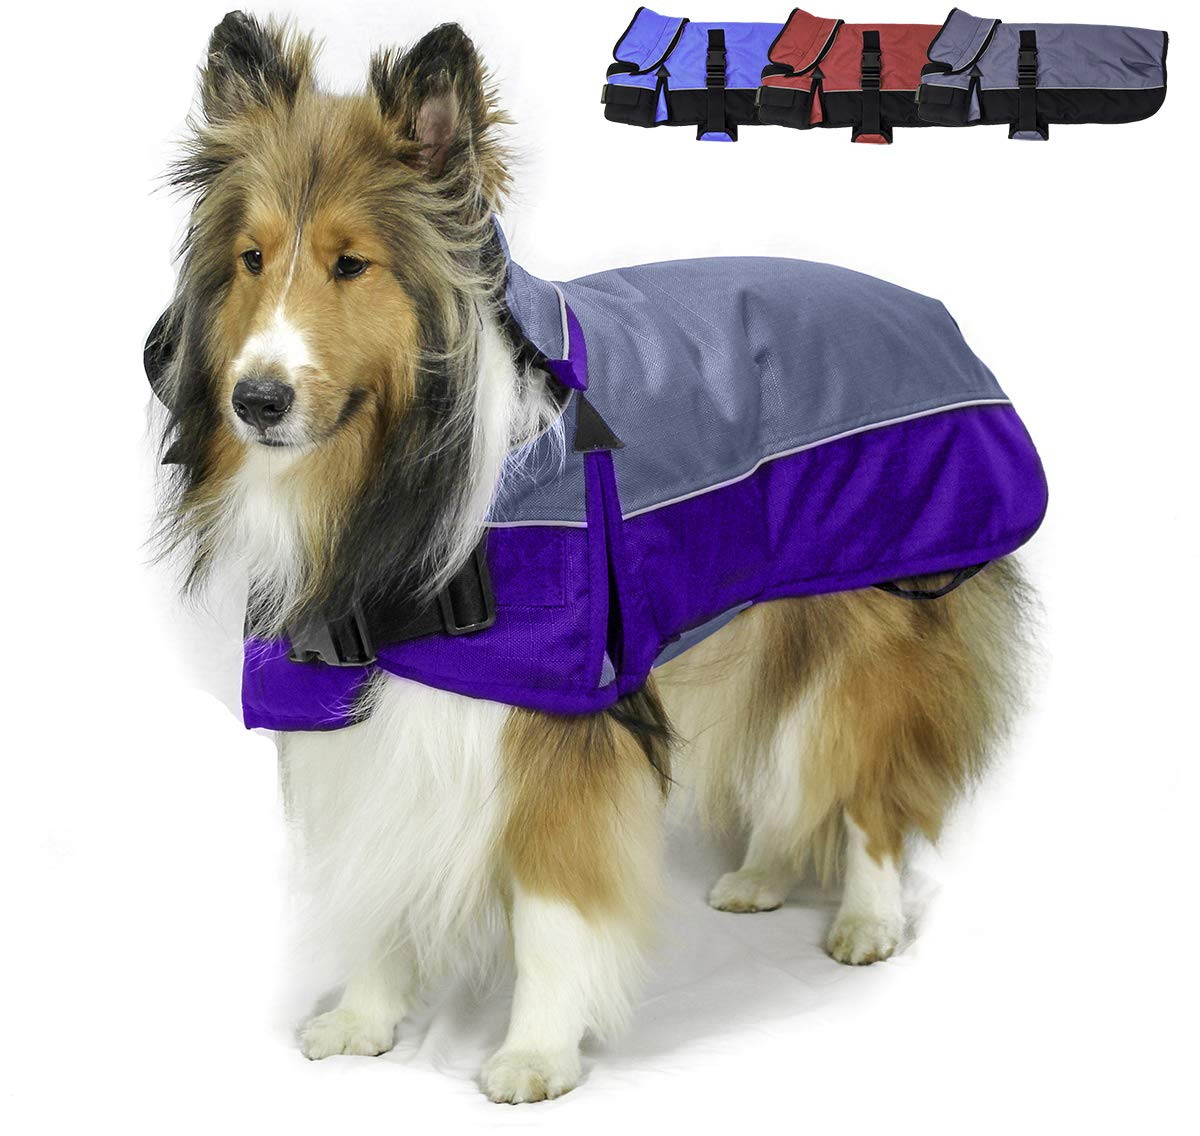 Derby Originals Safety Reflective 1200D Ripstop Waterproof Nylon Winter Dog Coat with Removable Neck Cover and Two Year Warranty - 220g Polyfil Insulation